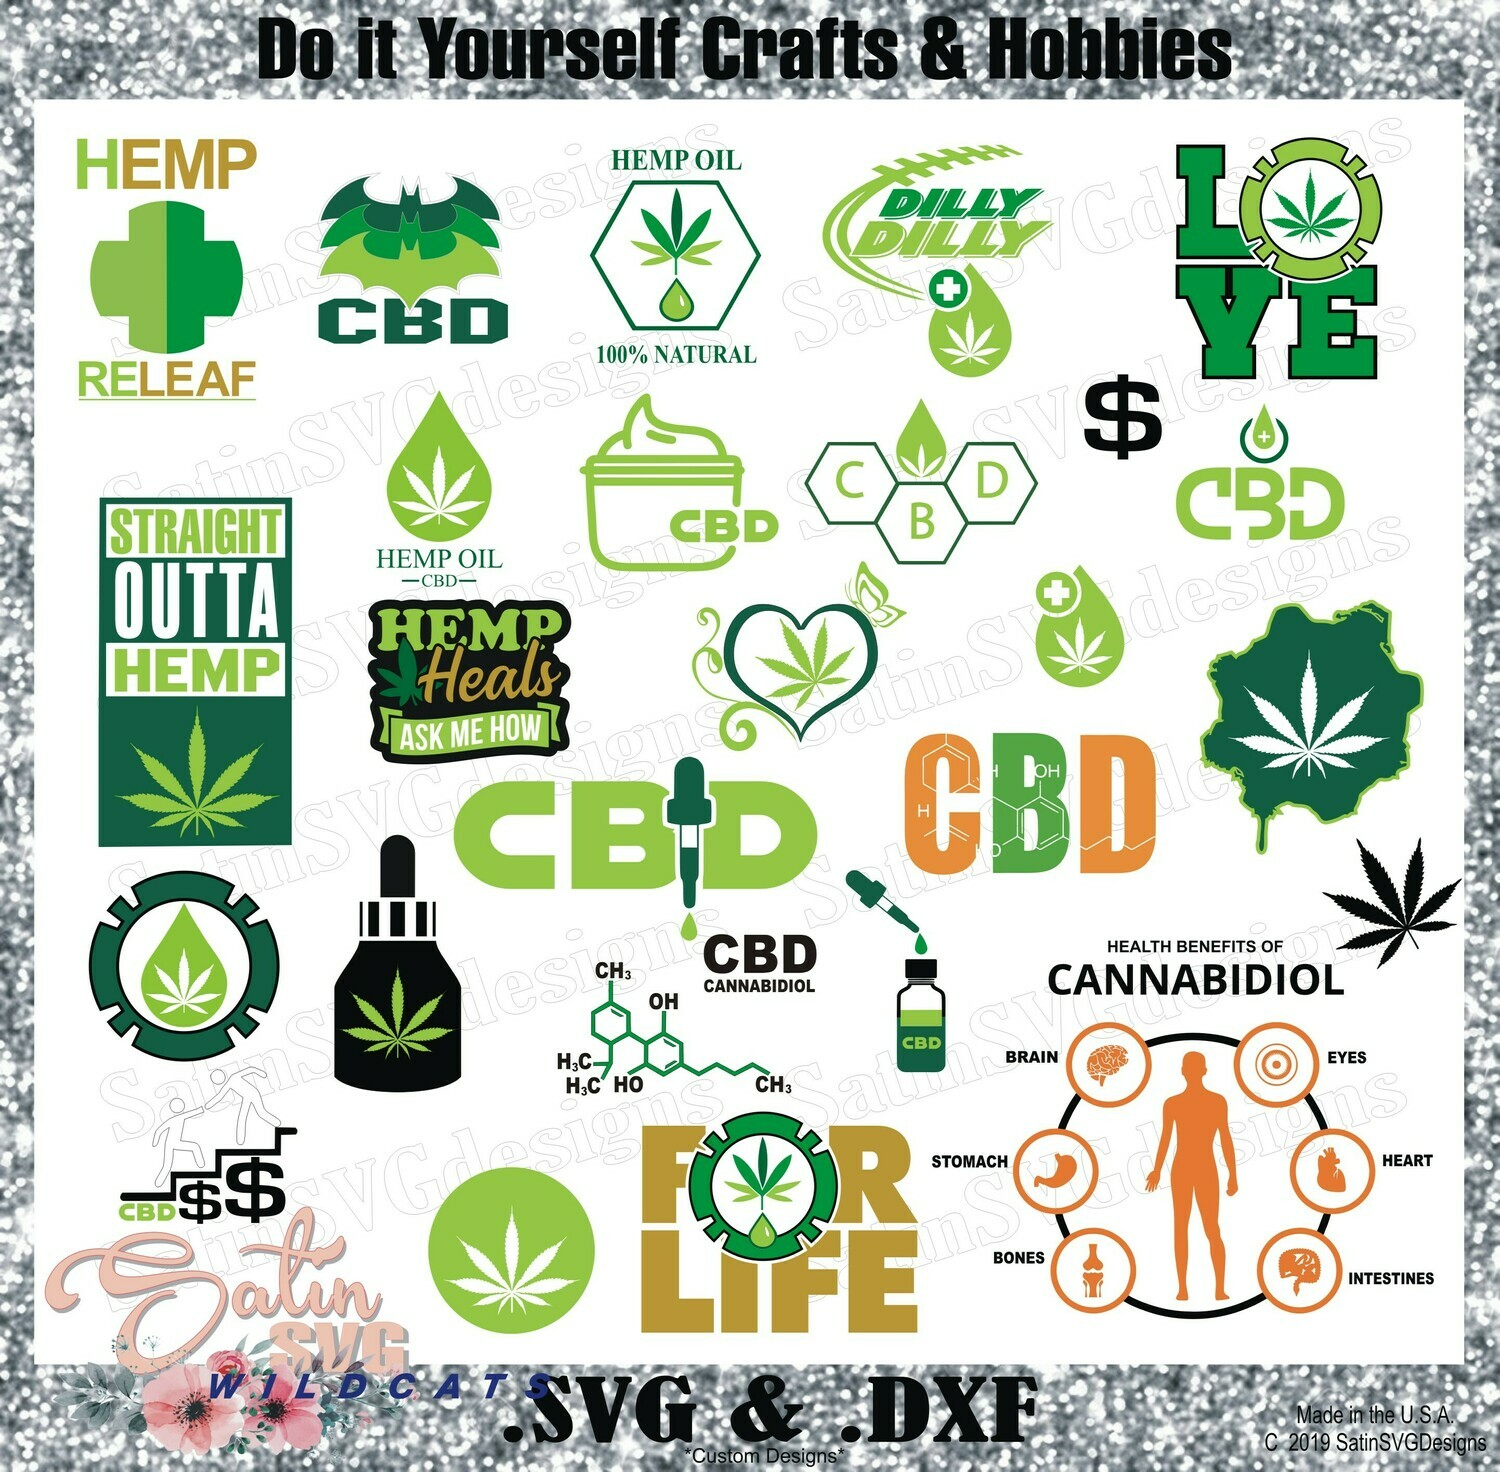 CBD Hemp Oils Business Icons NEW Design SVG Files, Cricut Maker Cutter, EasyPress, Cricut Infusible Ink, Silhouette Studio, Digital Cut Files